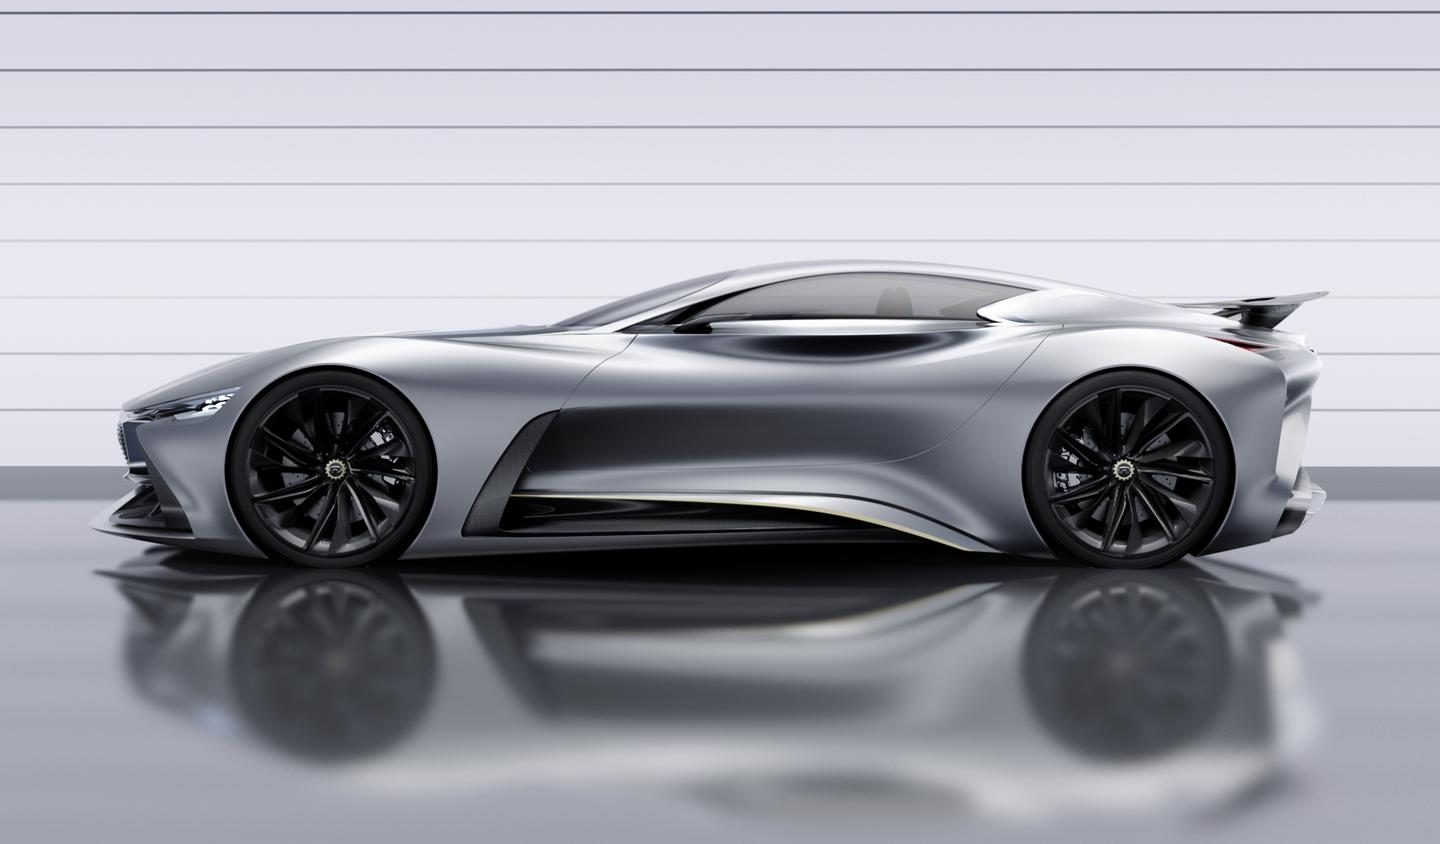 The Vision GT has a curvy profile and low roof